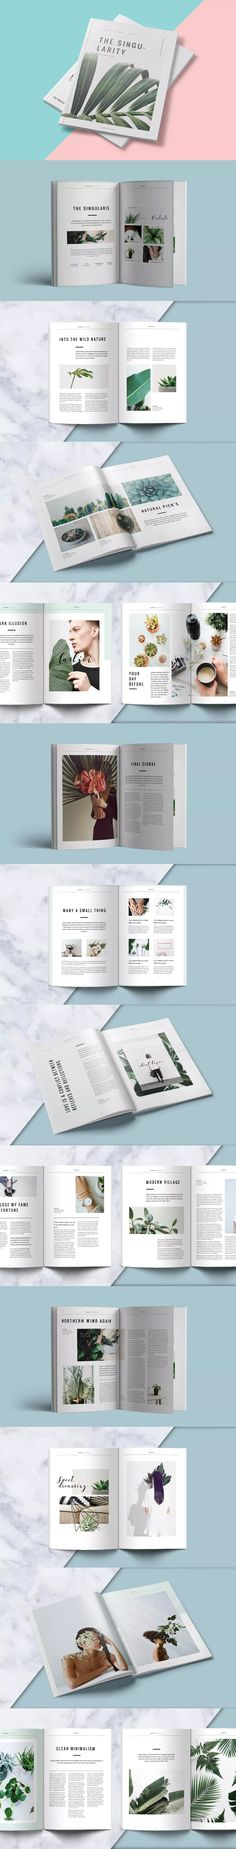 Clean Magazine Template InDesign INDD - A4 and US Letter Size